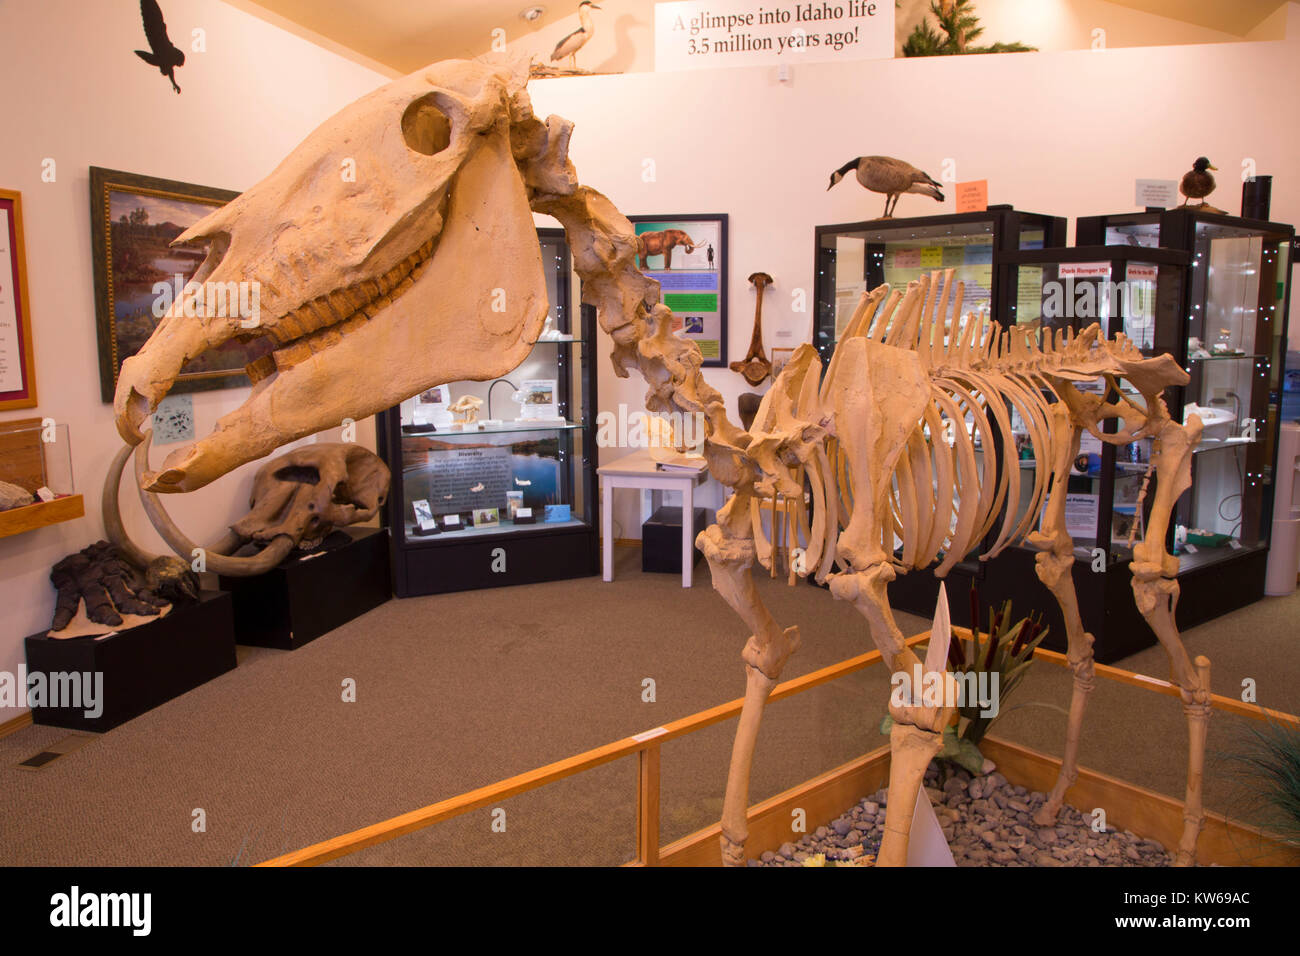 Fossil Hagerman horse (Equus simplicidens) in visitor center, Hagerman Fossil Beds National Monument, Idaho - Stock Image